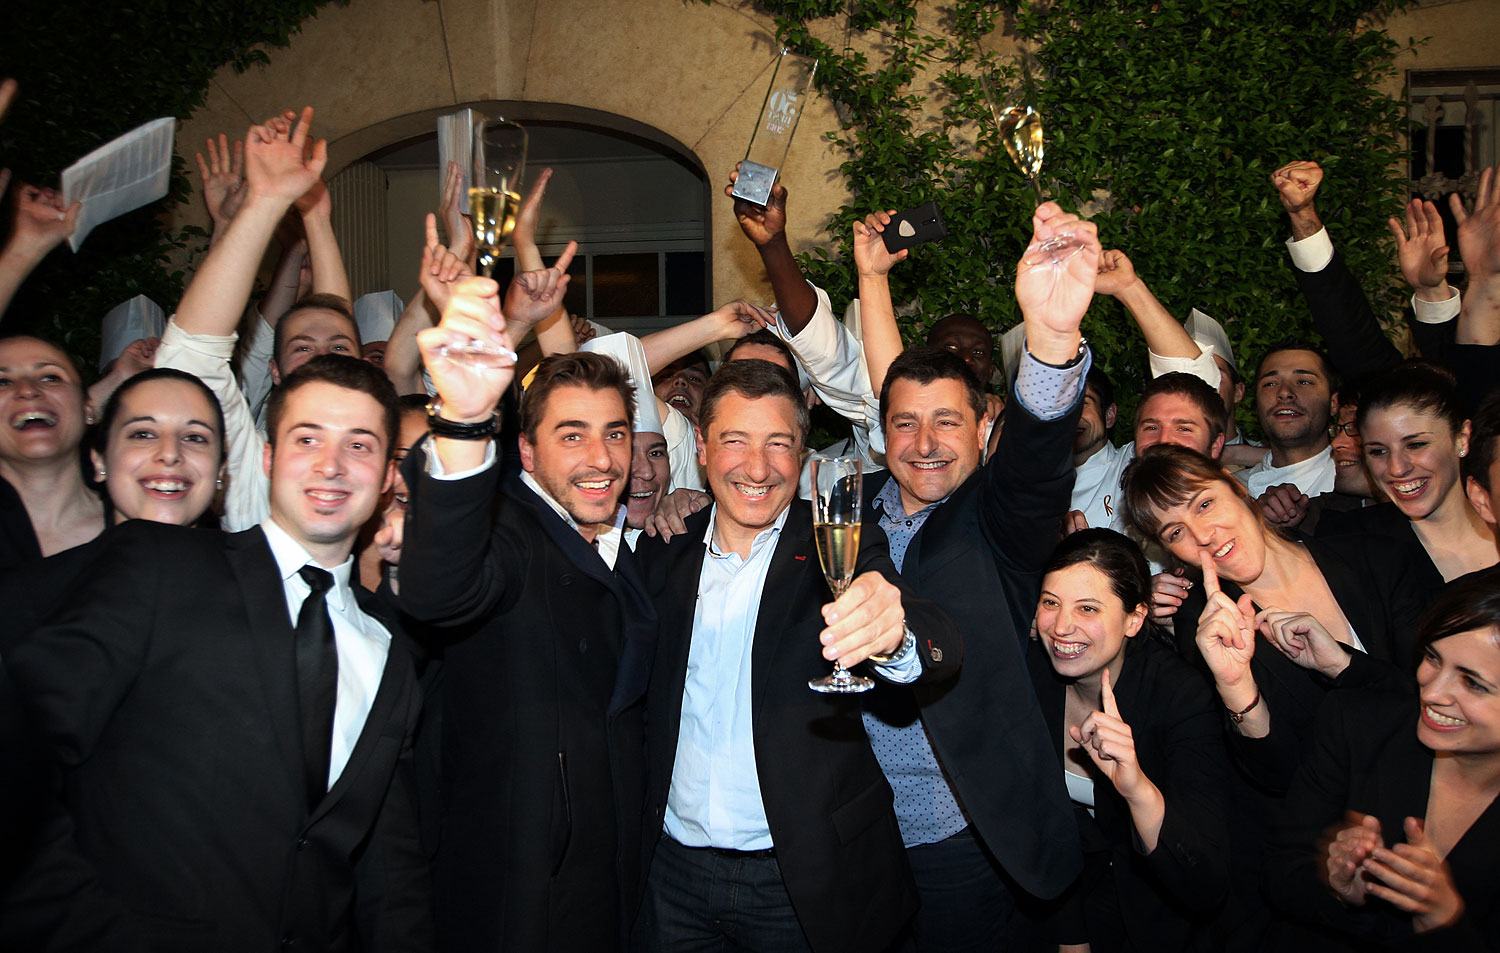 Spanish Chefs of  El Celler de Can Roca  Joan Roca, center, Jordi Roca, left, and Josep Roca, right, pose with their employees at the restaurant in Girona on April 30, 2013.